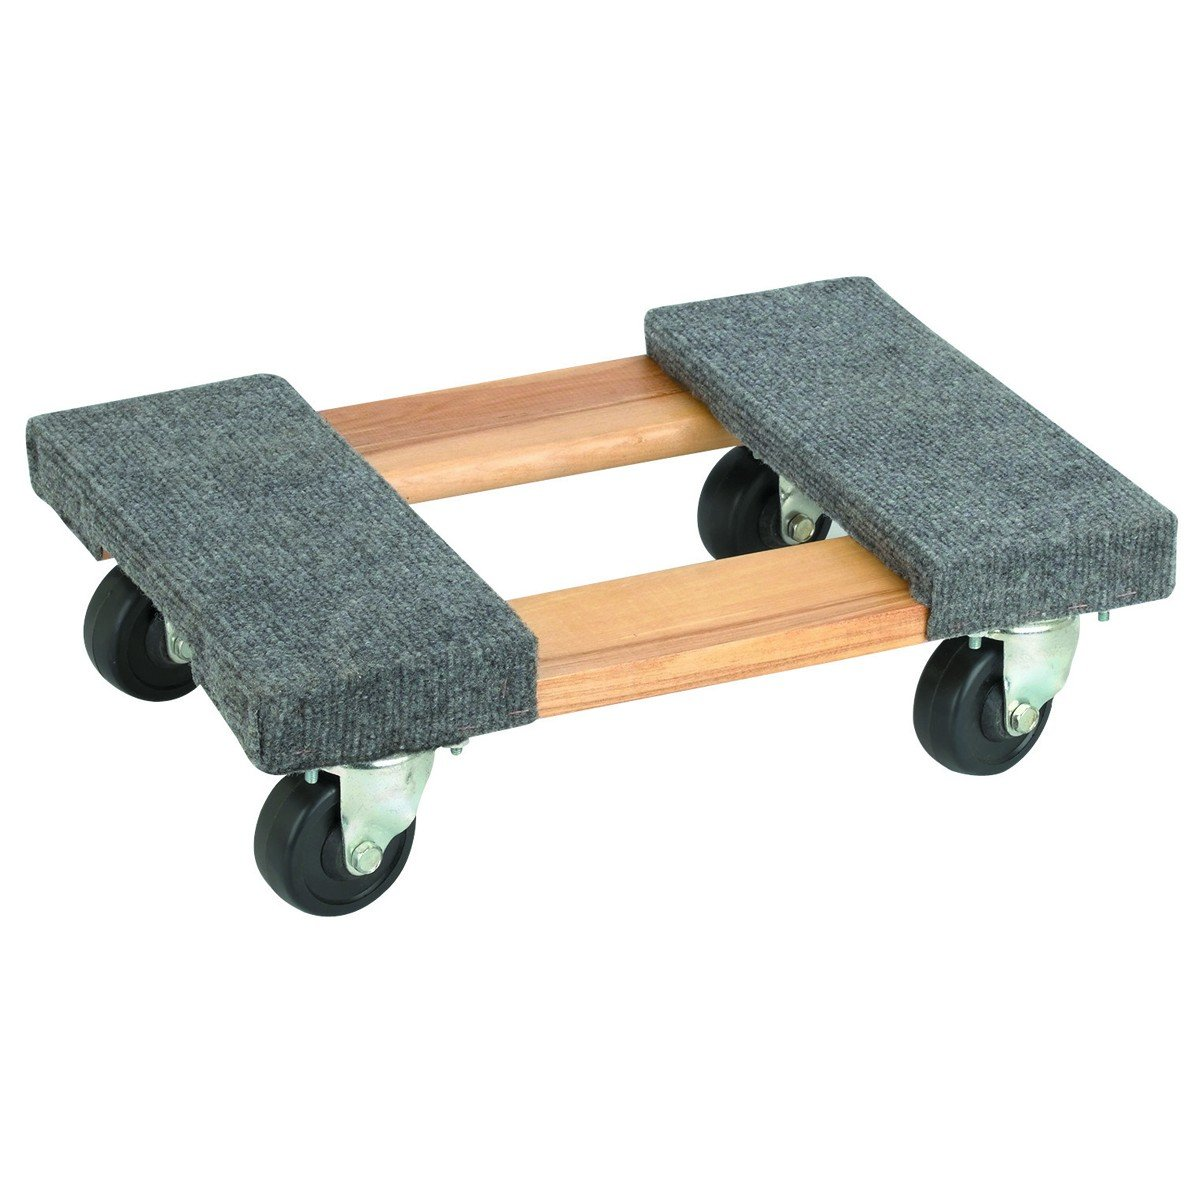 50-5401 TruePower 18'' X 12'' Mover's Dolly, 1000lbs Furniture Appliance, 4 x 3'' Rubber Swiveable Casters